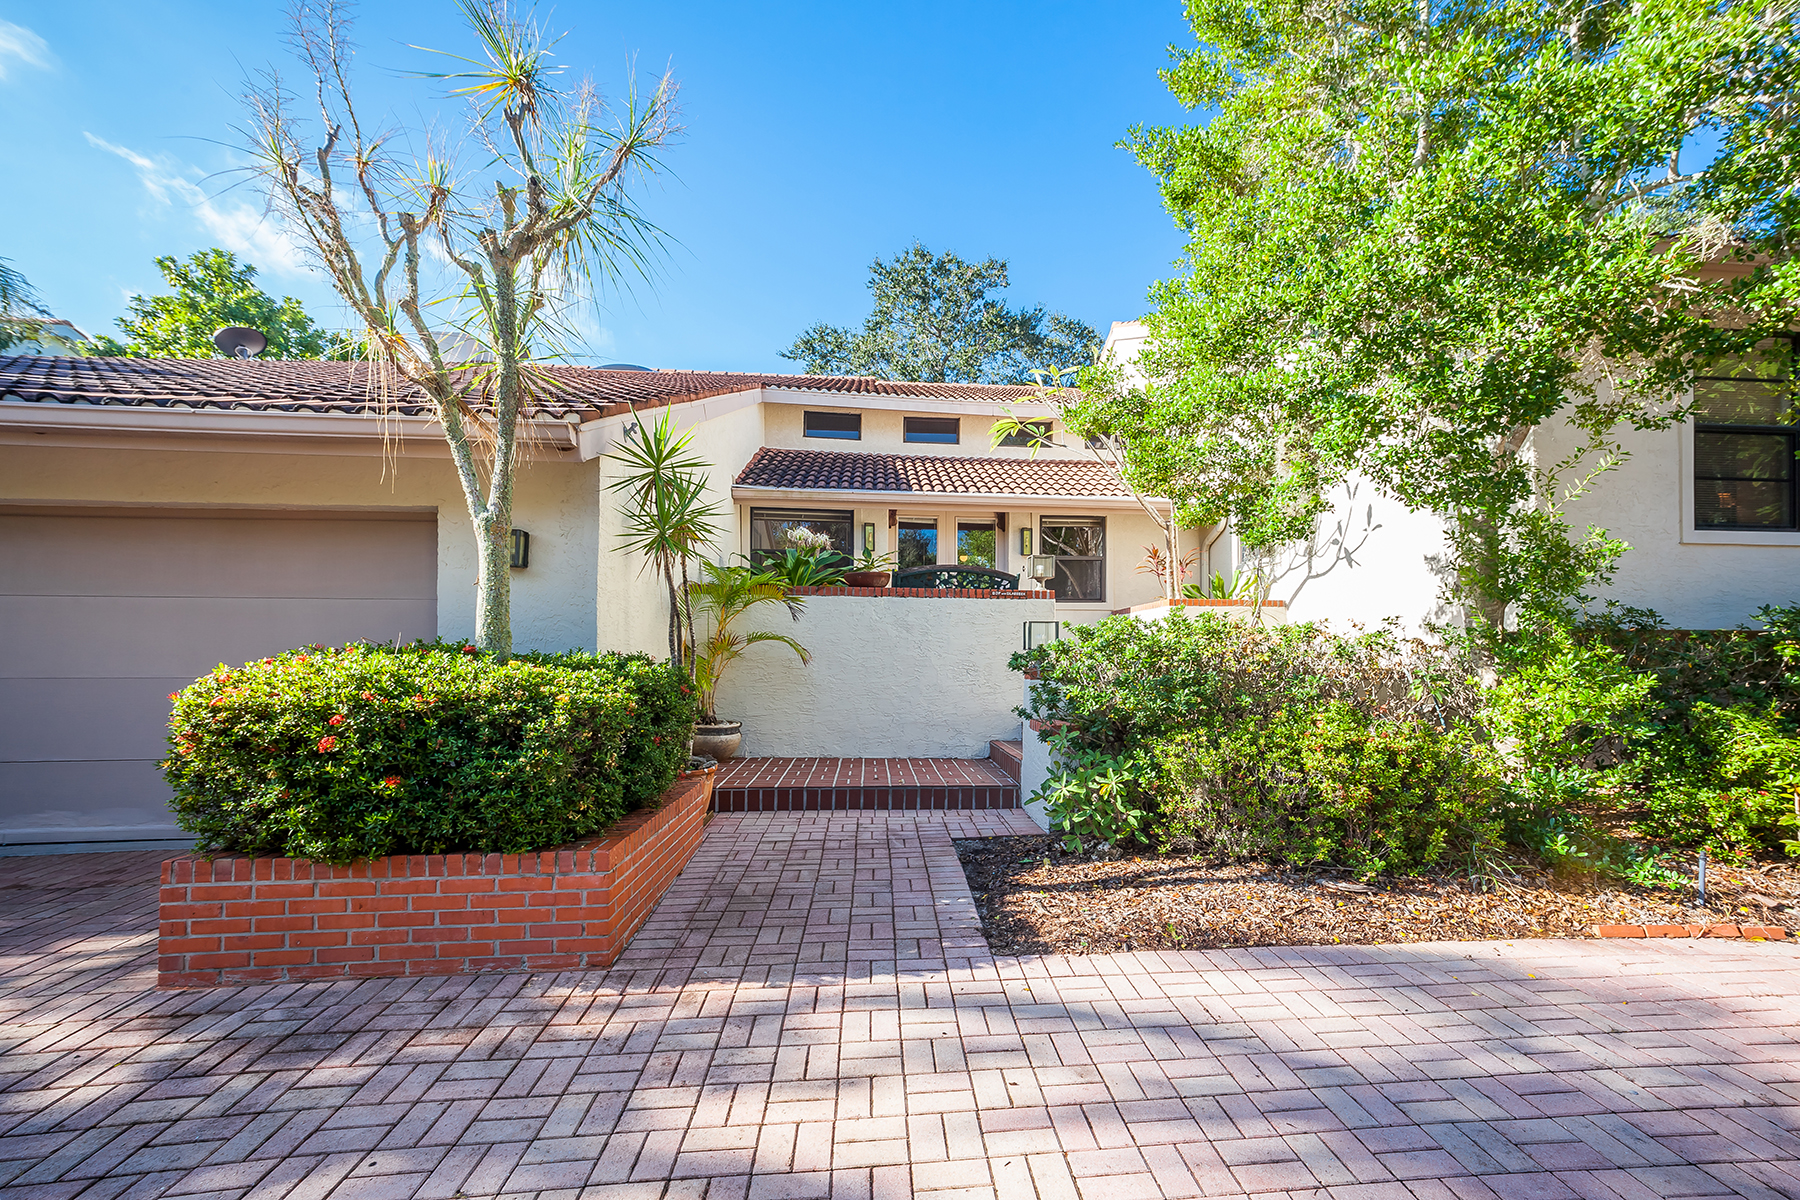 Single Family Home for Sale at LONGBOAT KEY 3391 Bayou Sound Longboat Key, Florida, 34228 United States